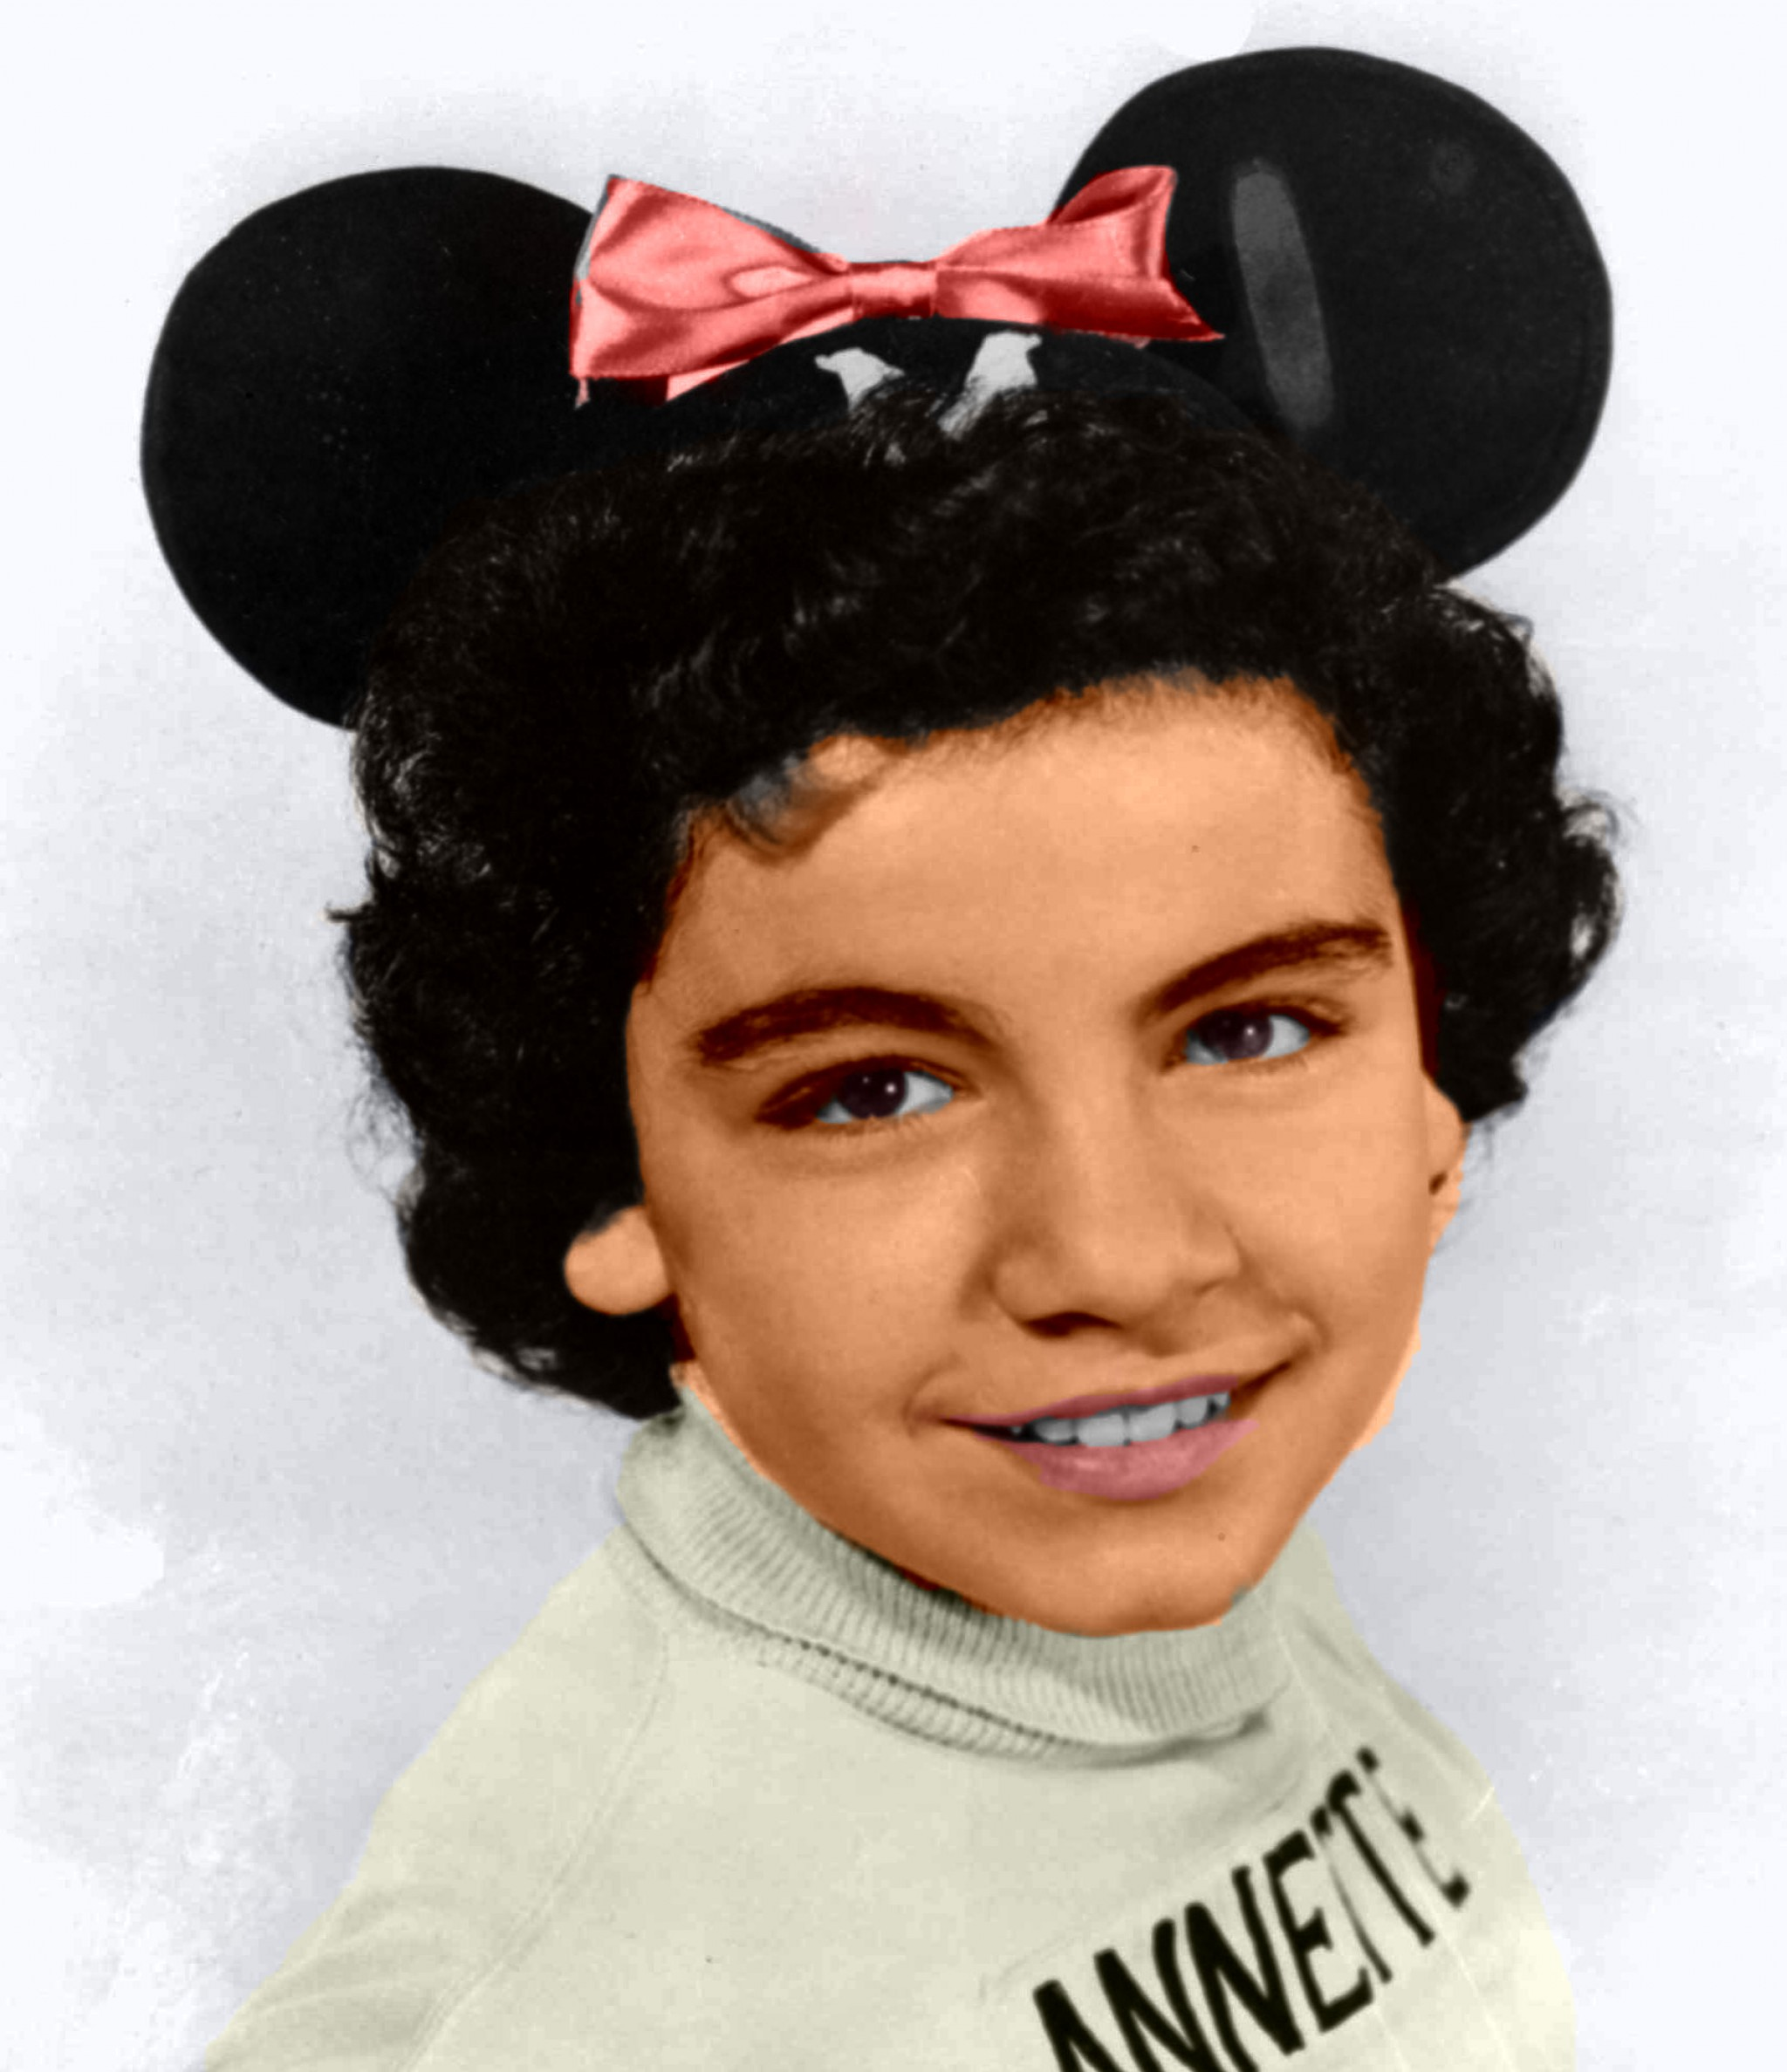 annette funicello background information born annette joanne funicello Mickey Mouse ... - Annette_funicello_mickey_mouse_club_color